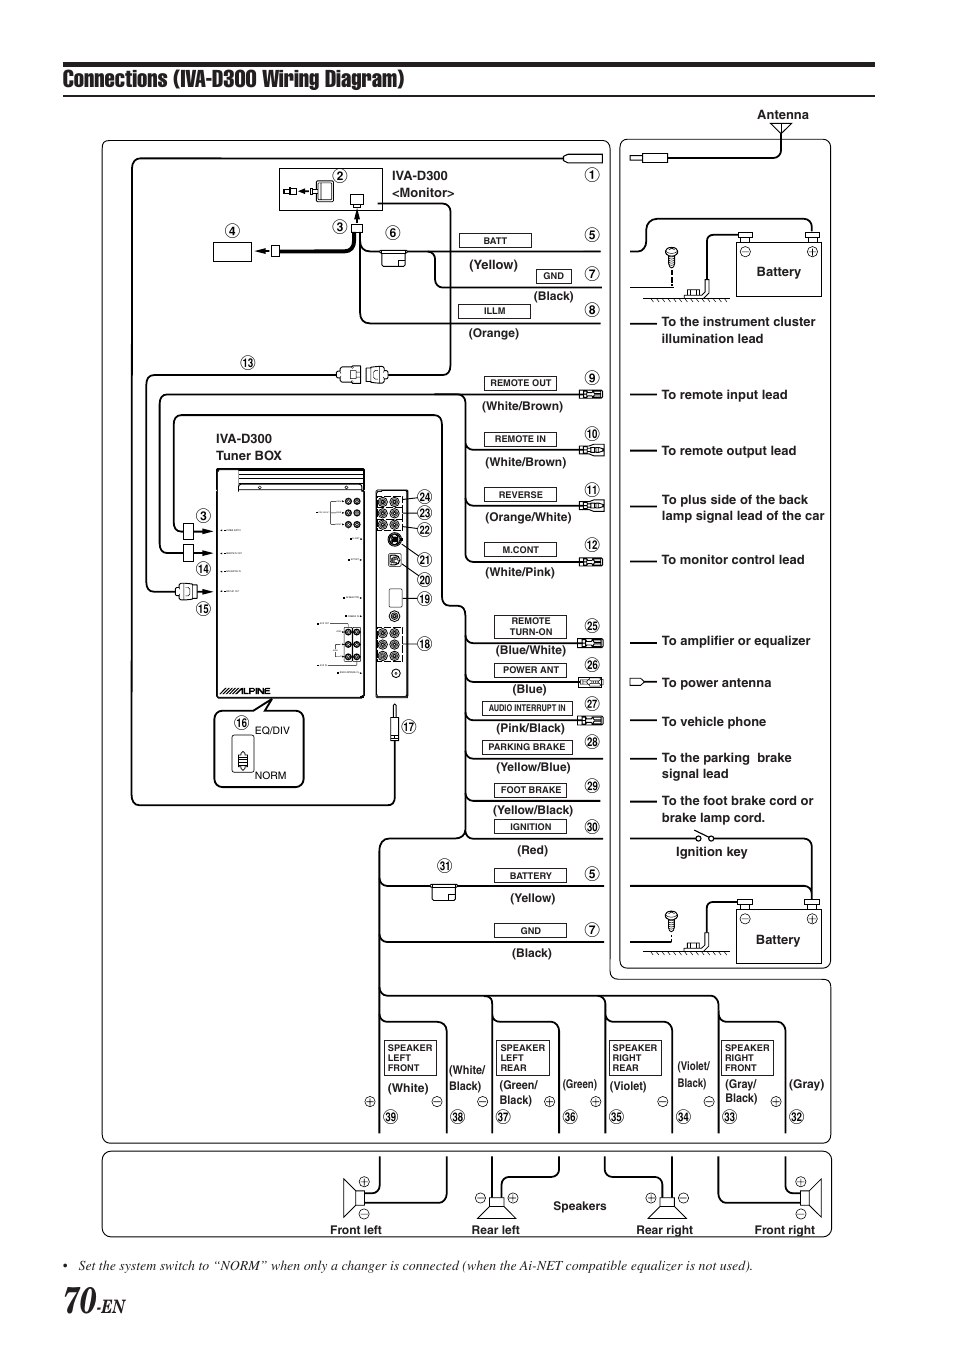 alpine iva d300 page72?resize\\\\\\\\\\\\\\\\\\\\\\\\\\\\\\\=665%2C938 case 1845c wiring diagram case 1845c thermostat \u2022 wiring diagrams case 430 skid steer wiring diagram at reclaimingppi.co